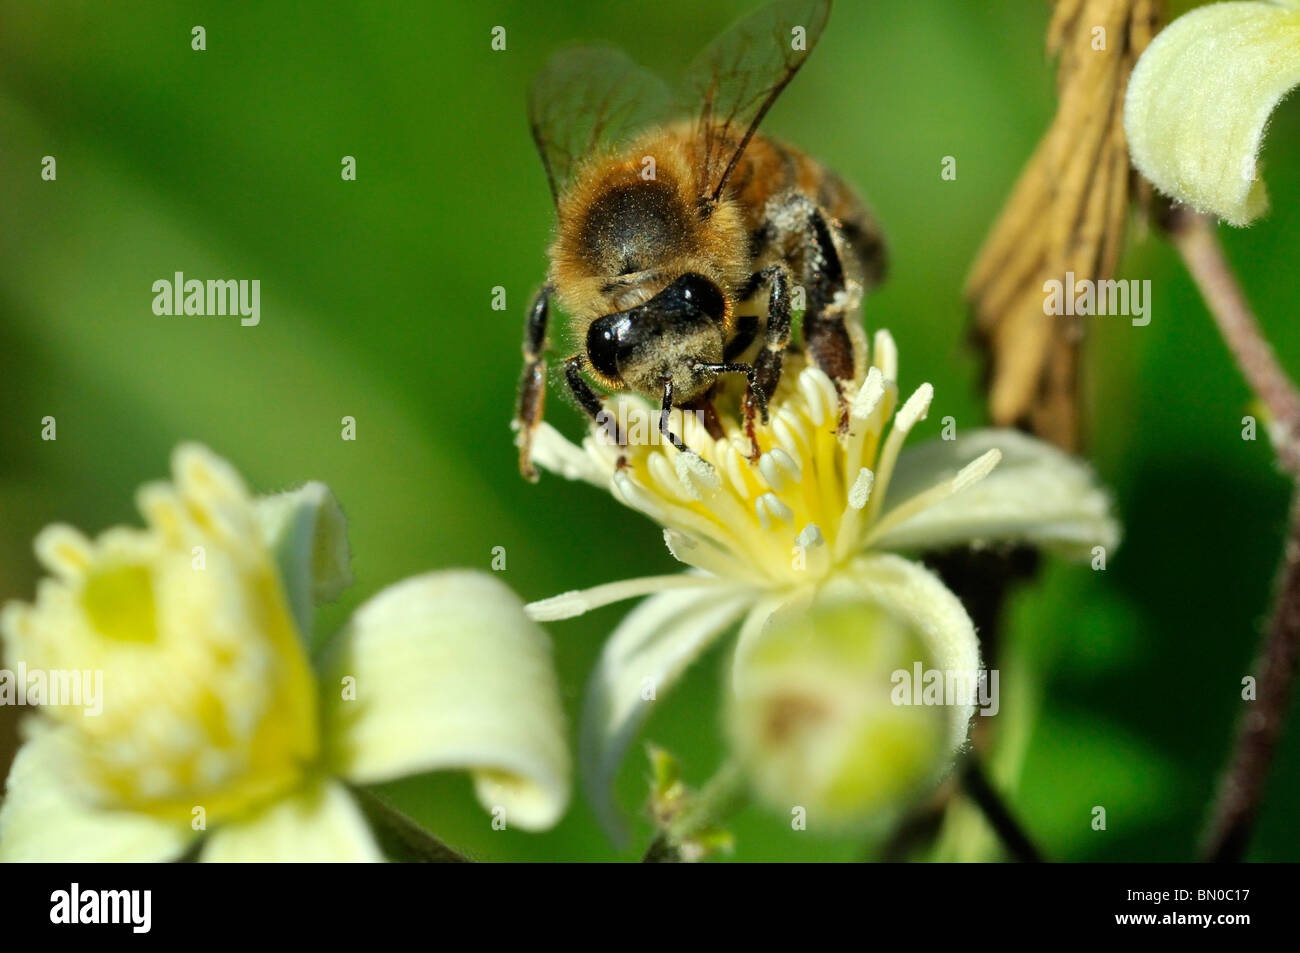 Apis mellifera, European honey bee or western honey bee on Clematis vitalba flower - Stock Image